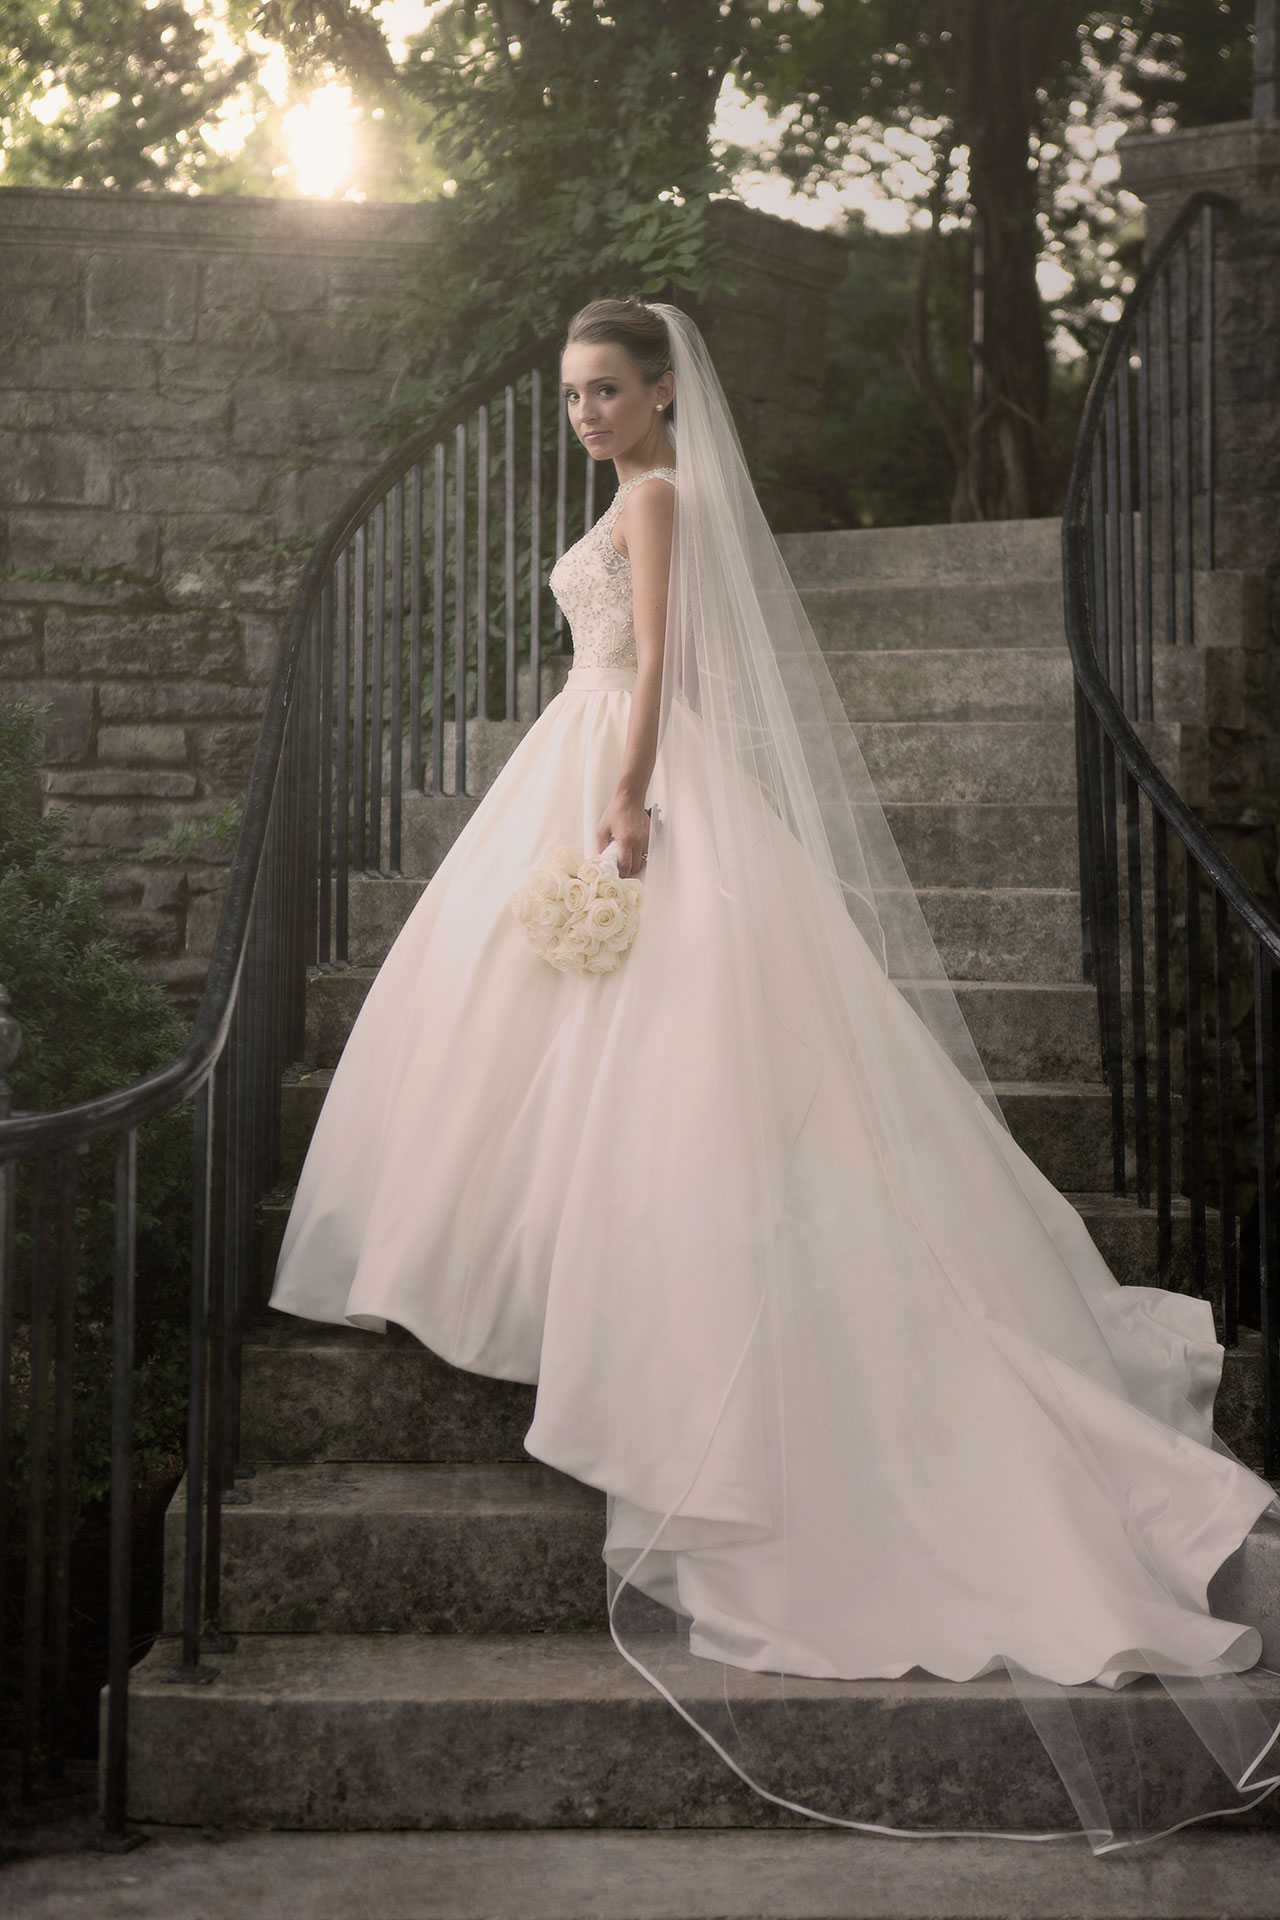 Cinderella Inspired Wedding Gown | Long Train, Cathedral Veil, Sparkle Top